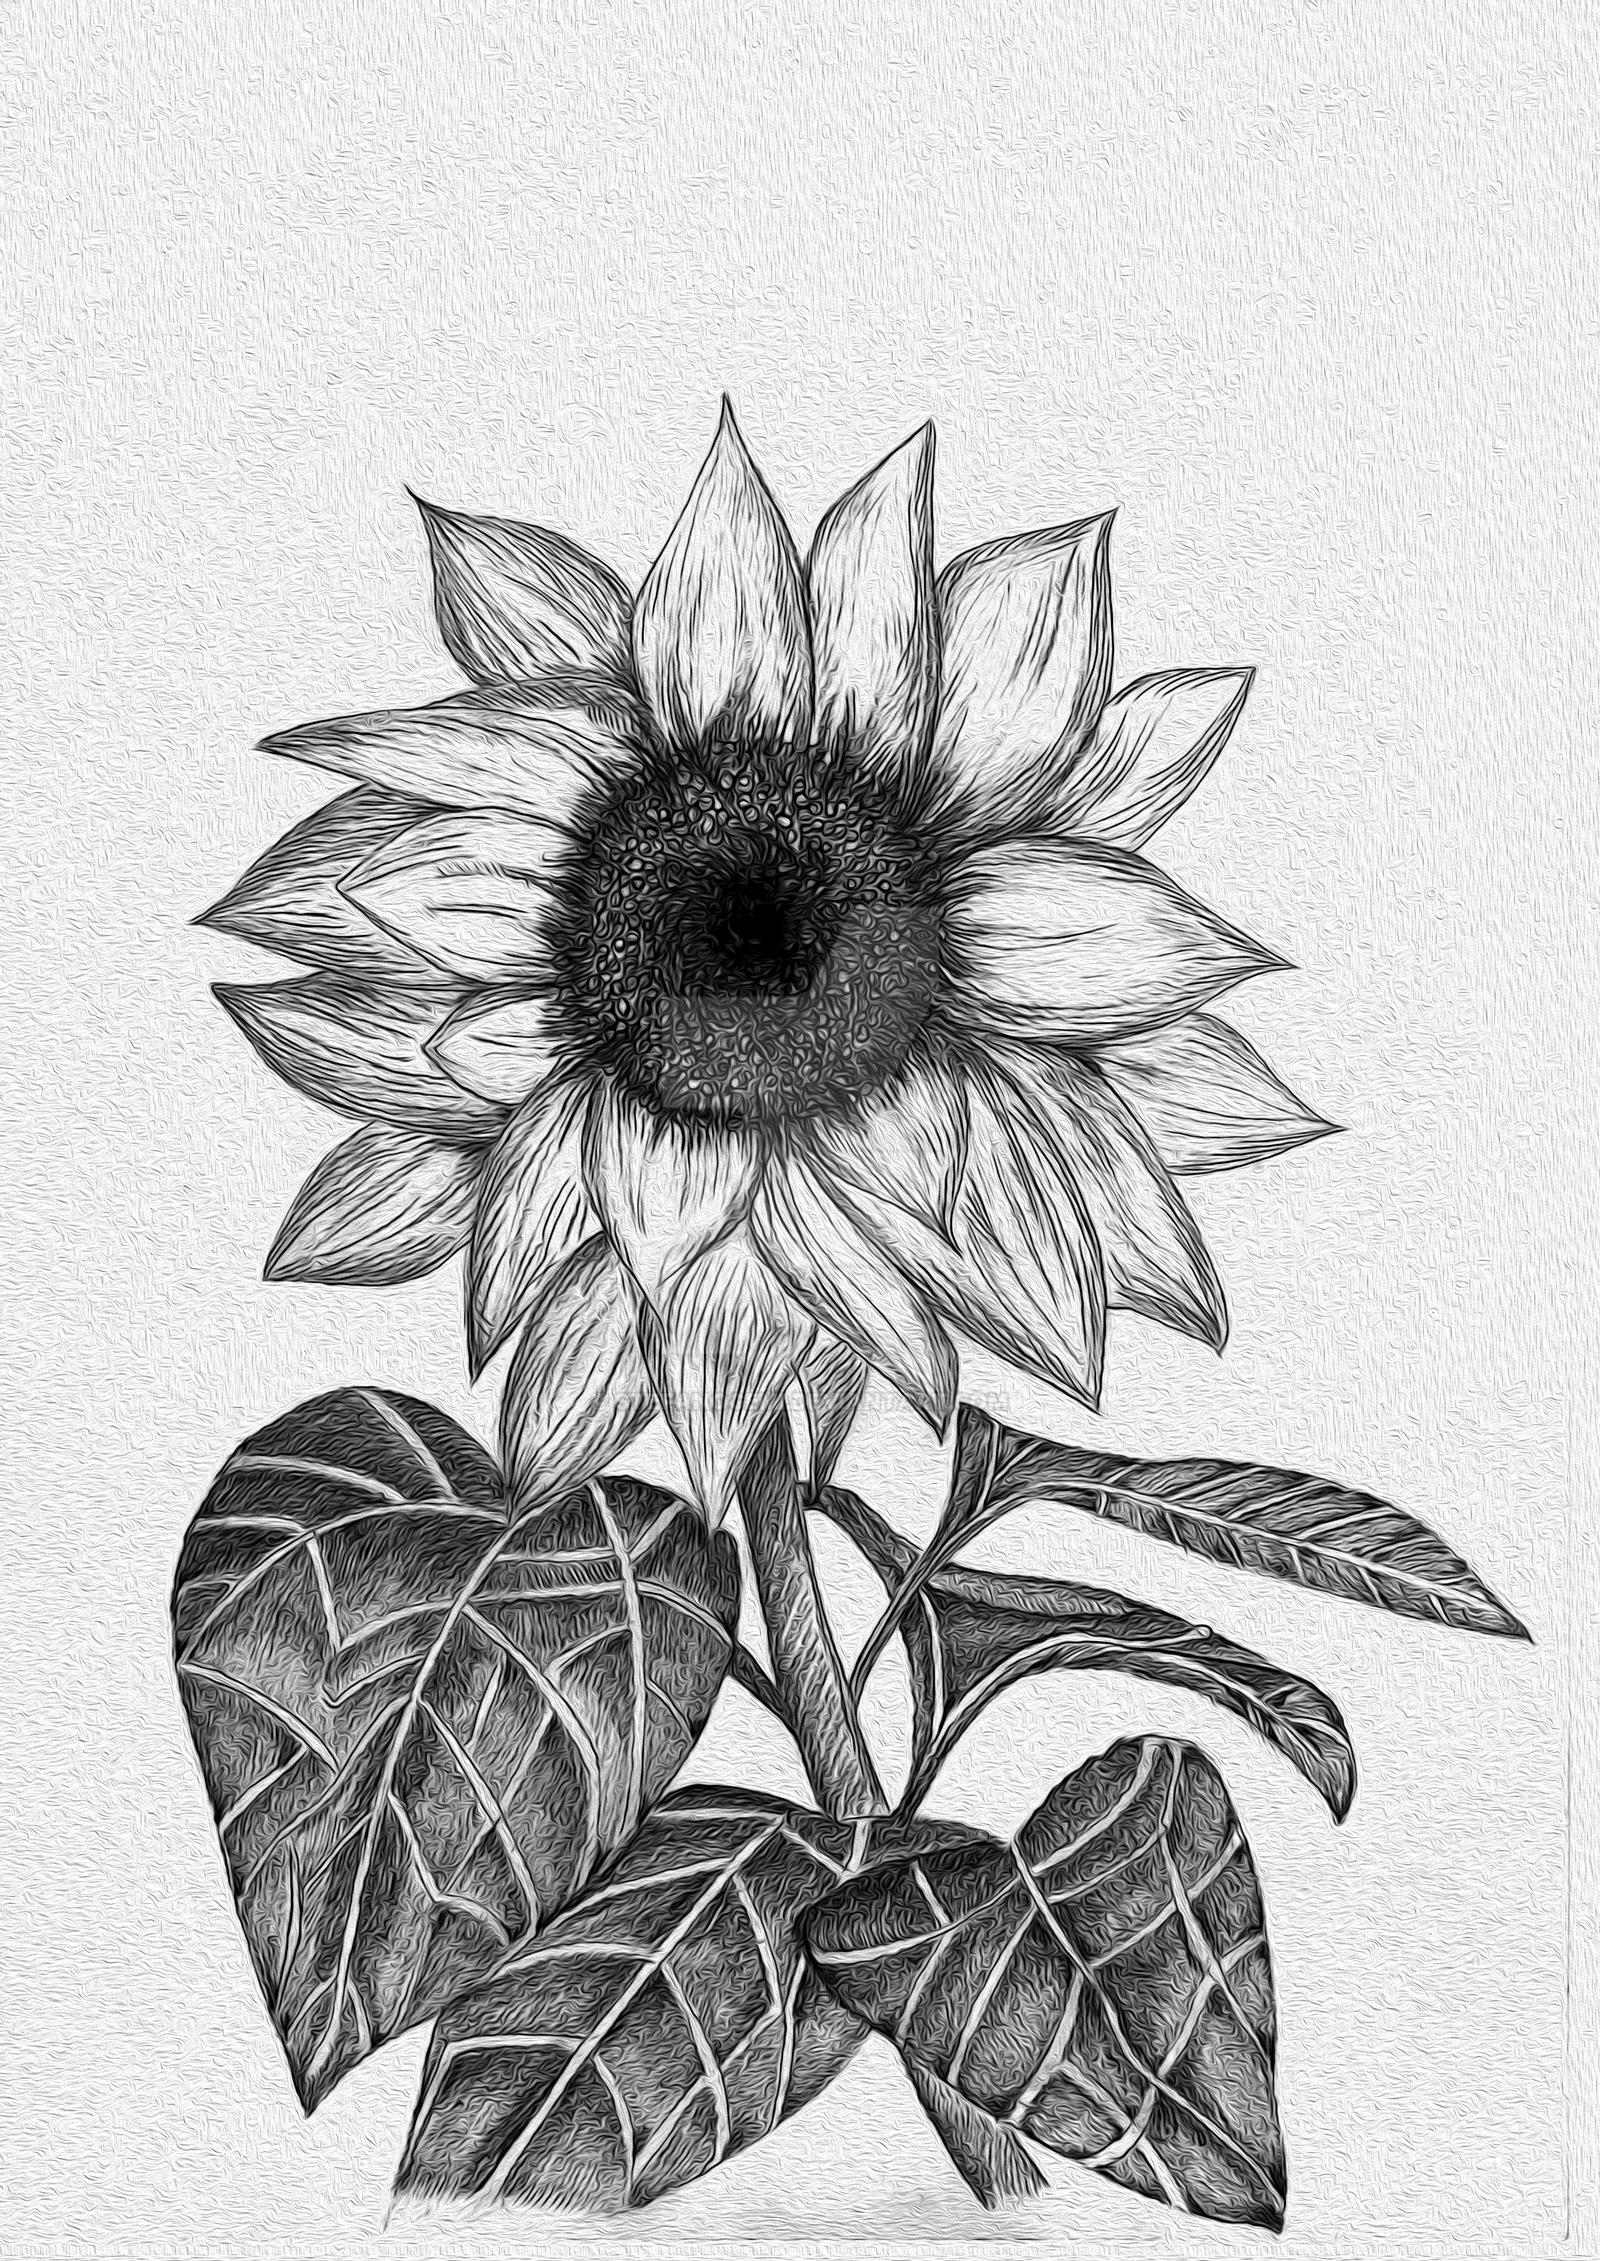 drawing of a sunflower sunflower drawing by zachzurn on deviantart sunflower a drawing of